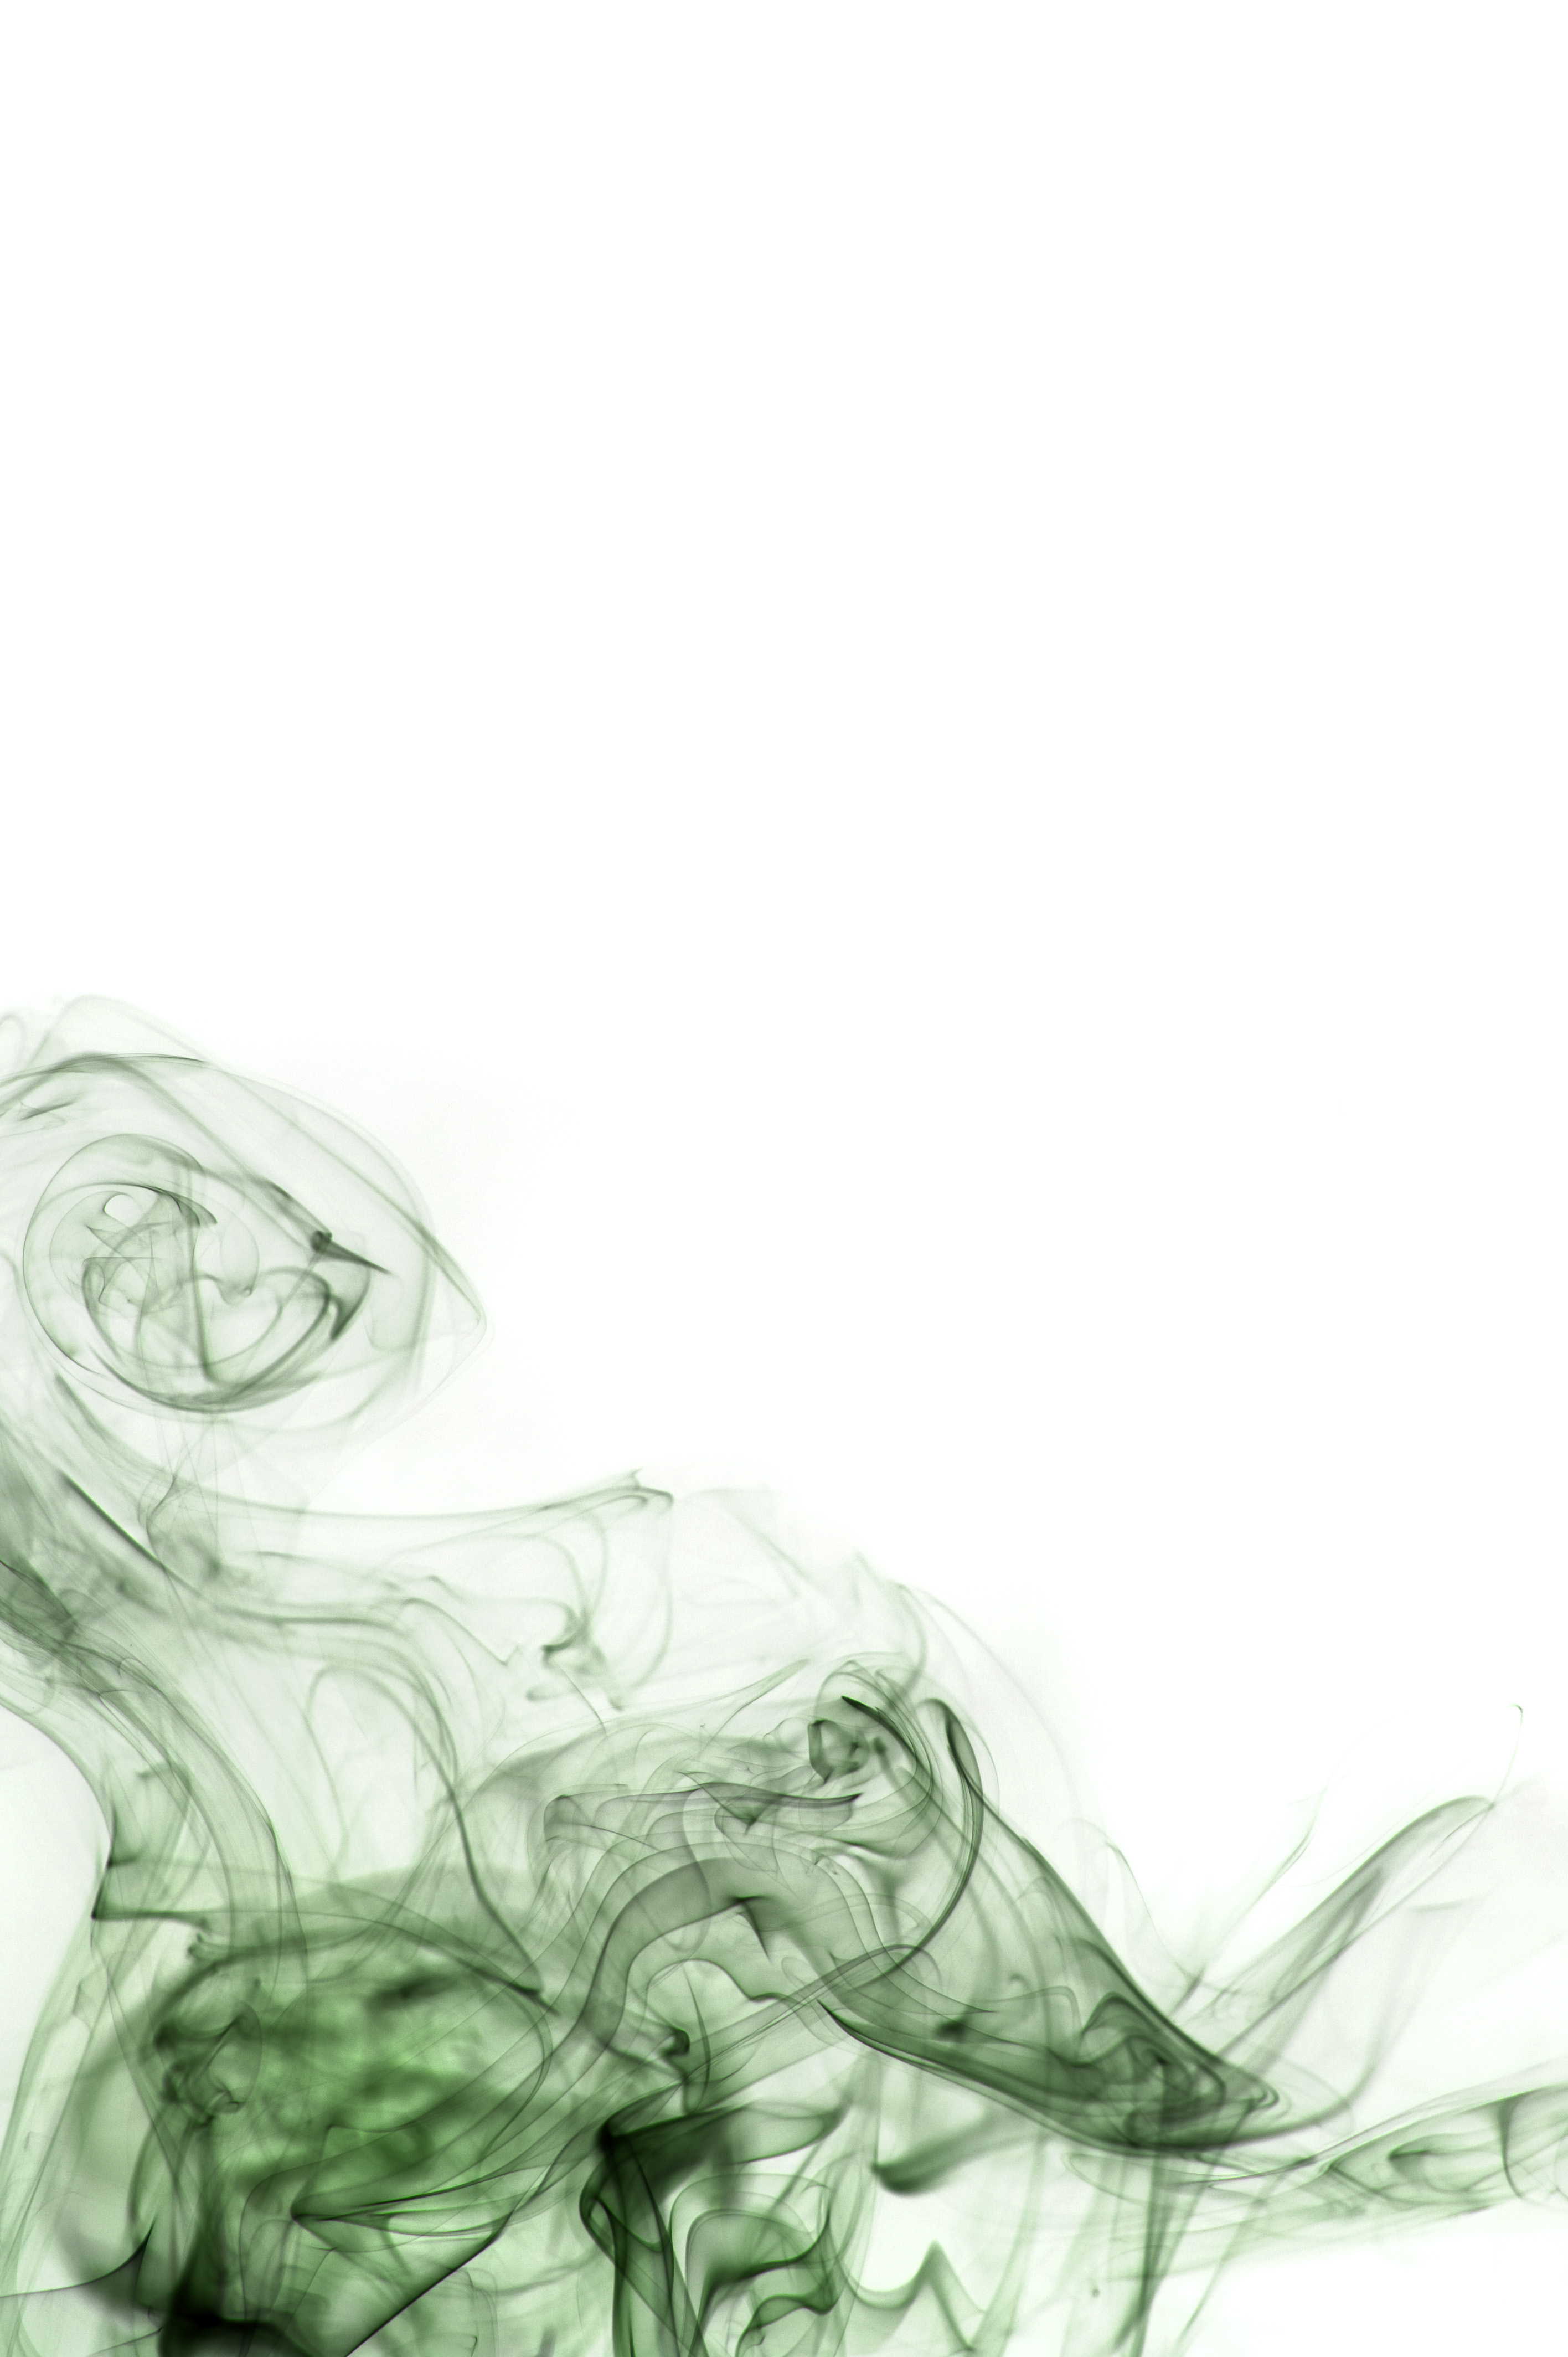 a white background with green smoke swirls